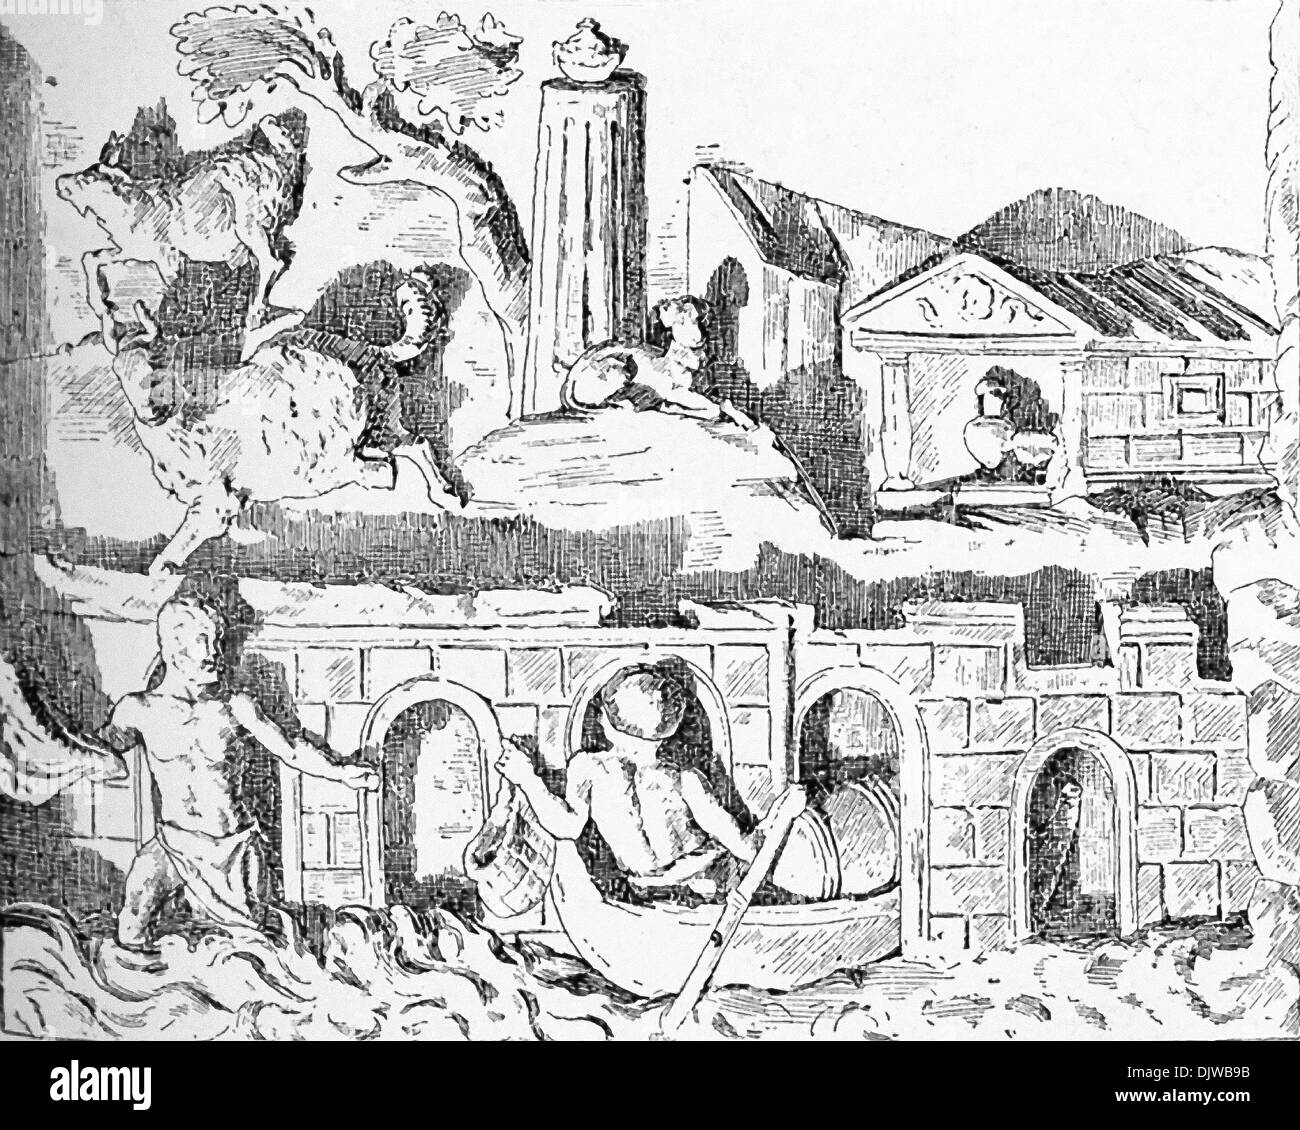 In the background is a mortuary chapel. In the foreground is a bridge-like structure, with men from Hellenistic period fishing. - Stock Image